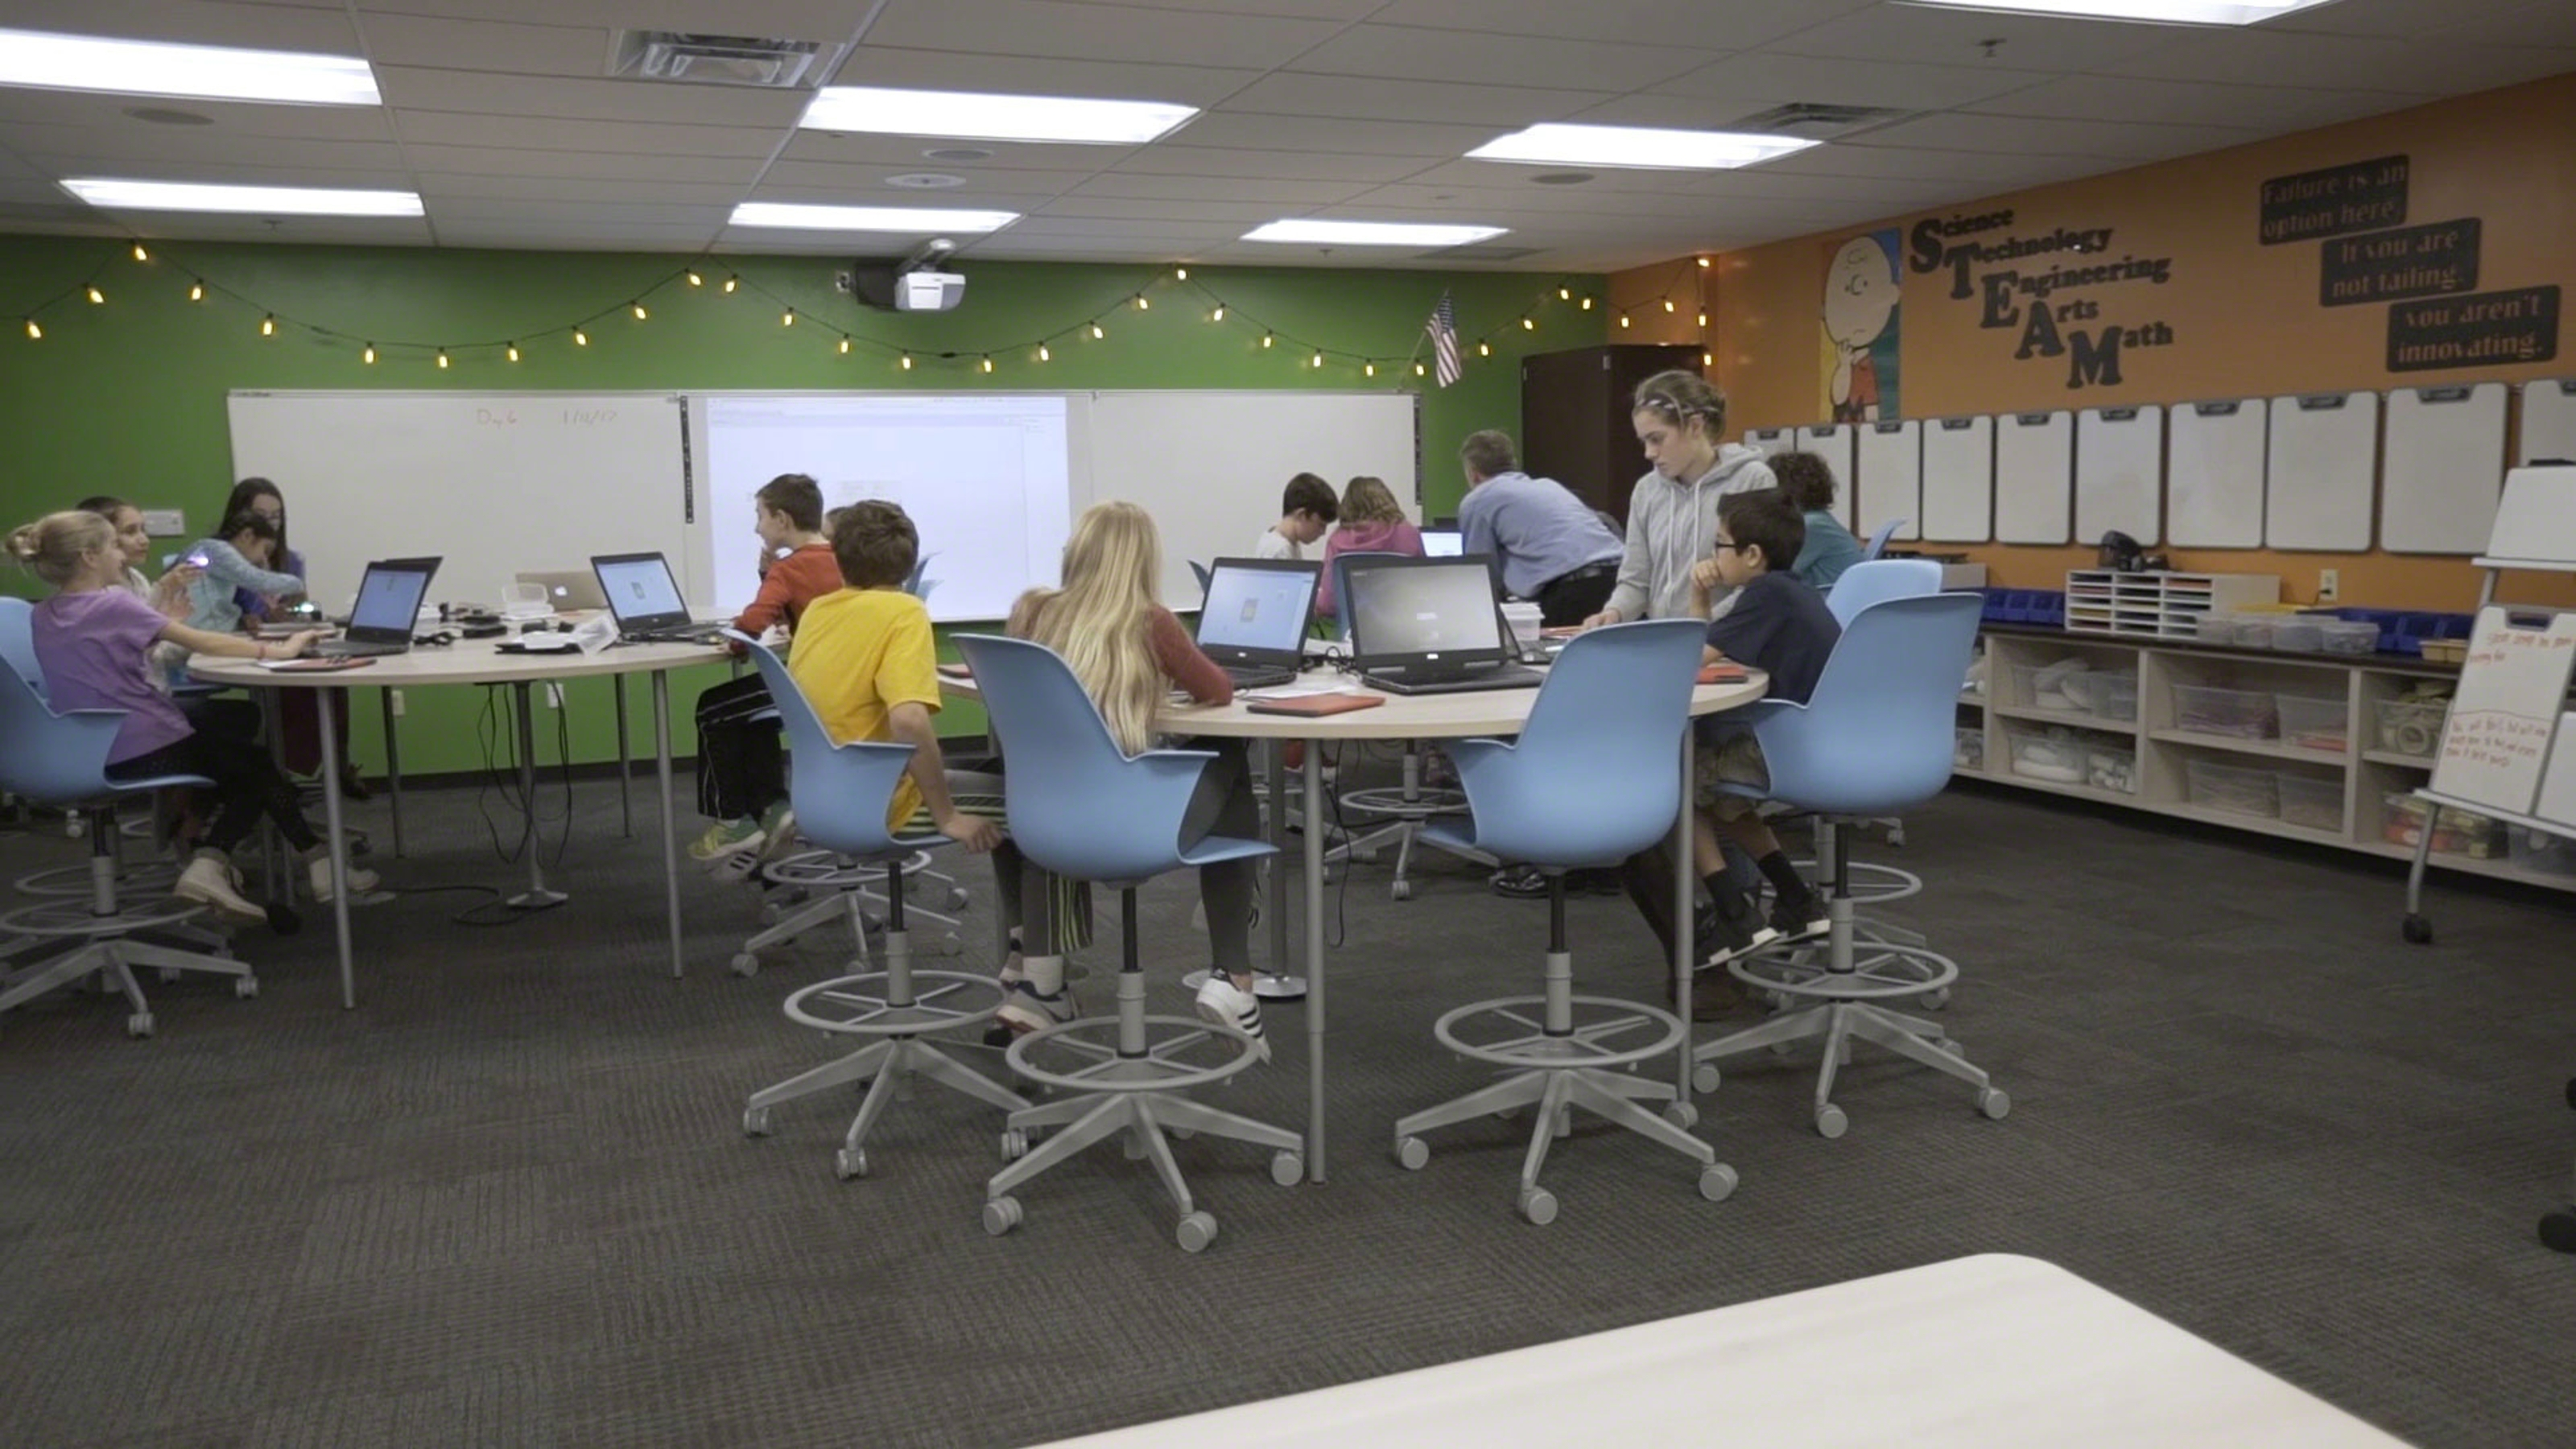 Classroom Design Secondary ~ Award winning teacher motivates students with active learning